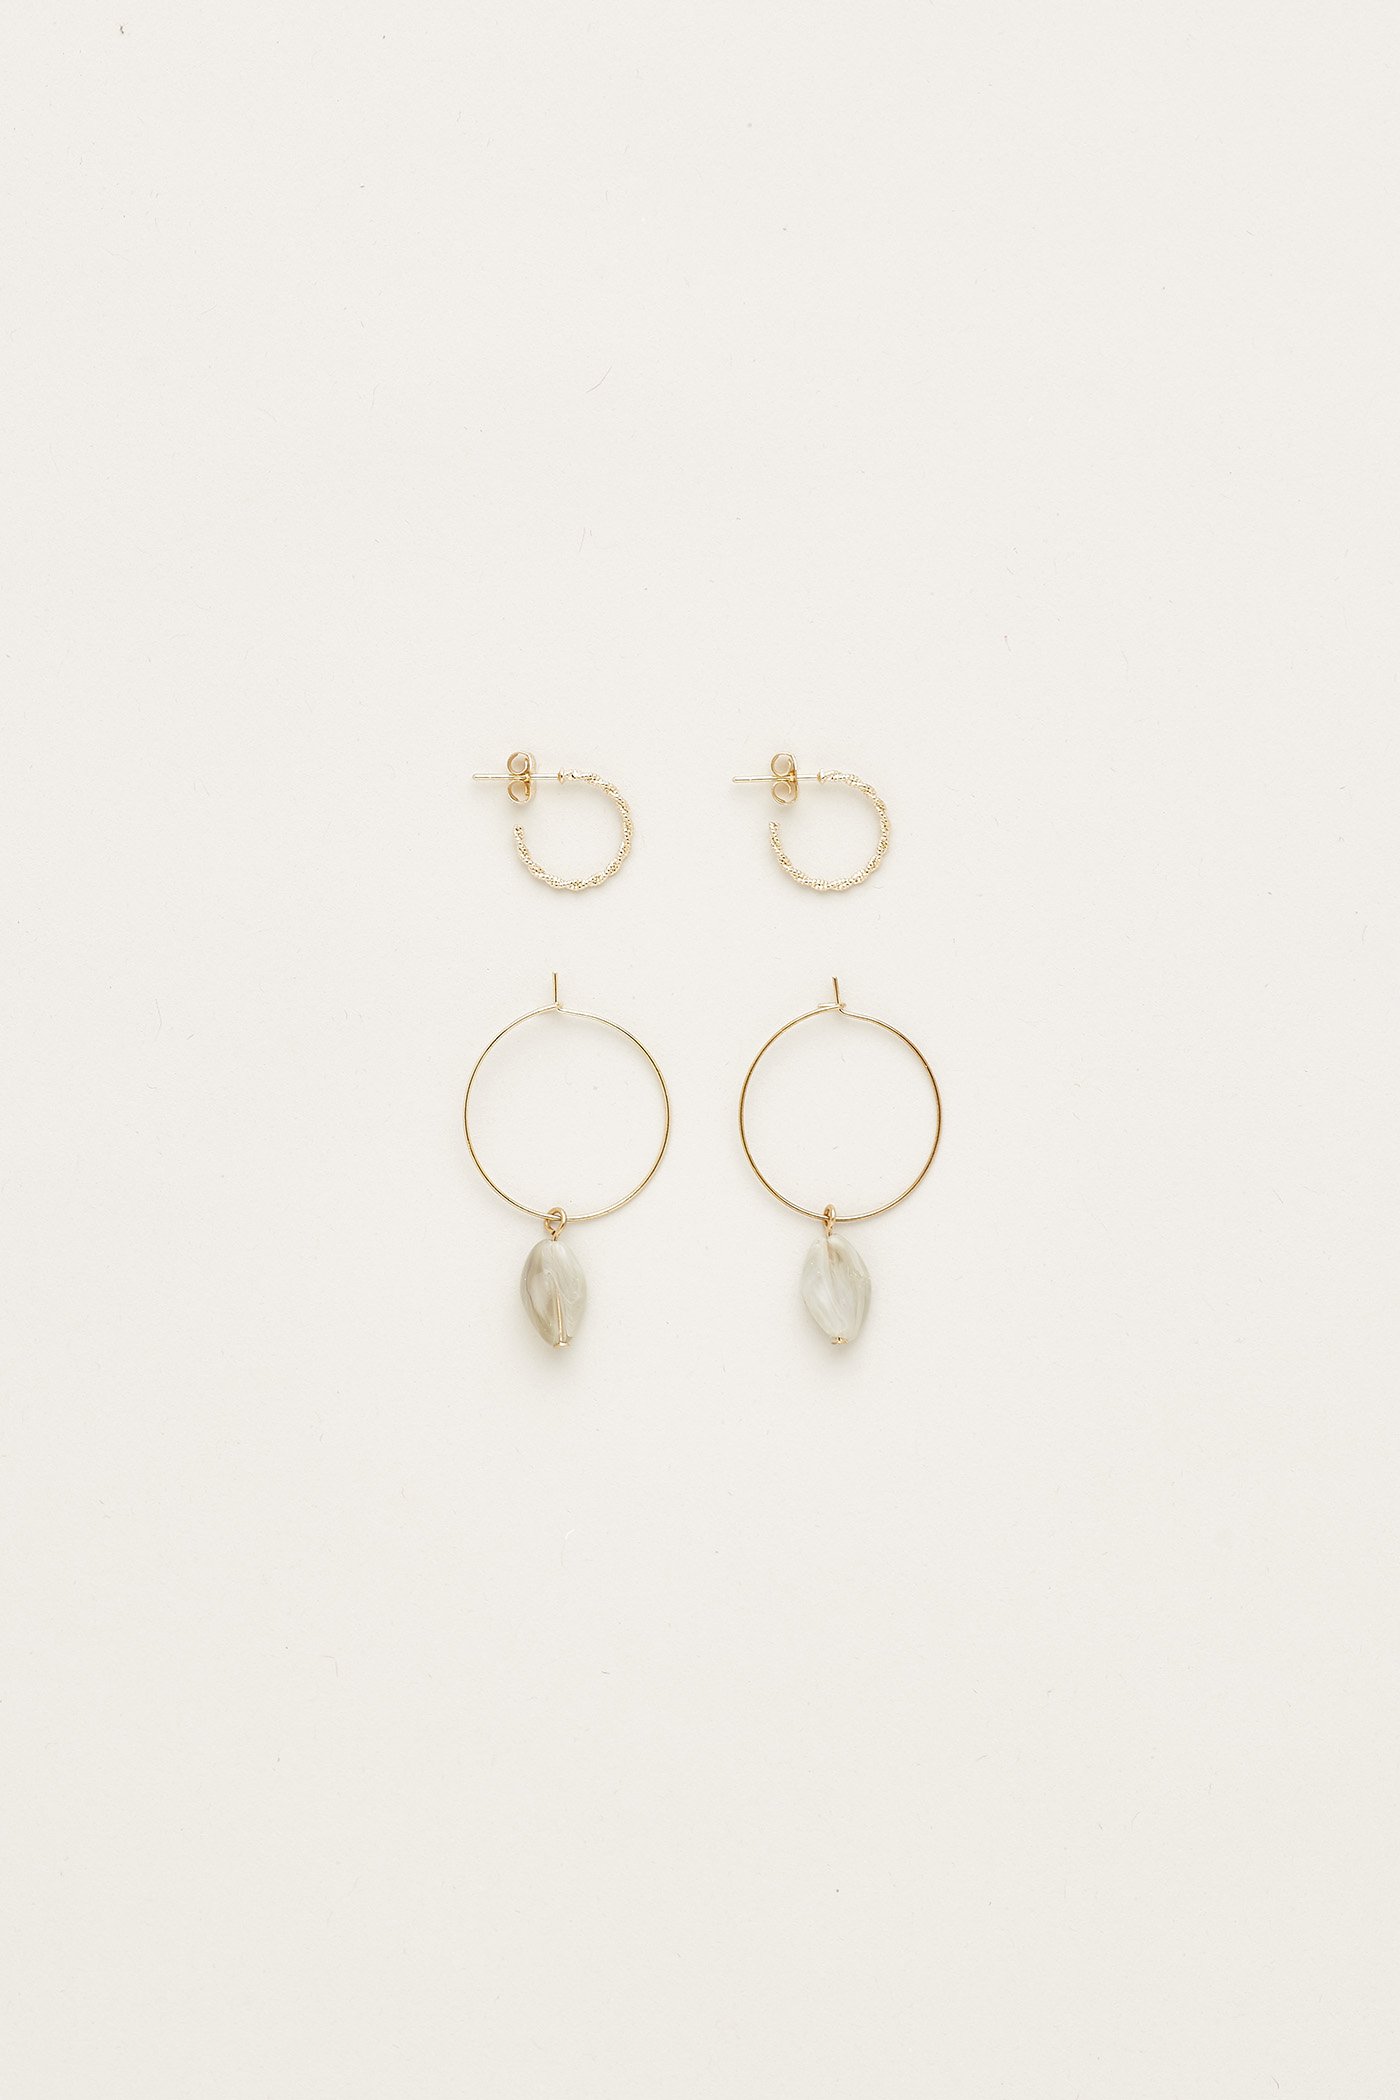 Lorielle Earrings